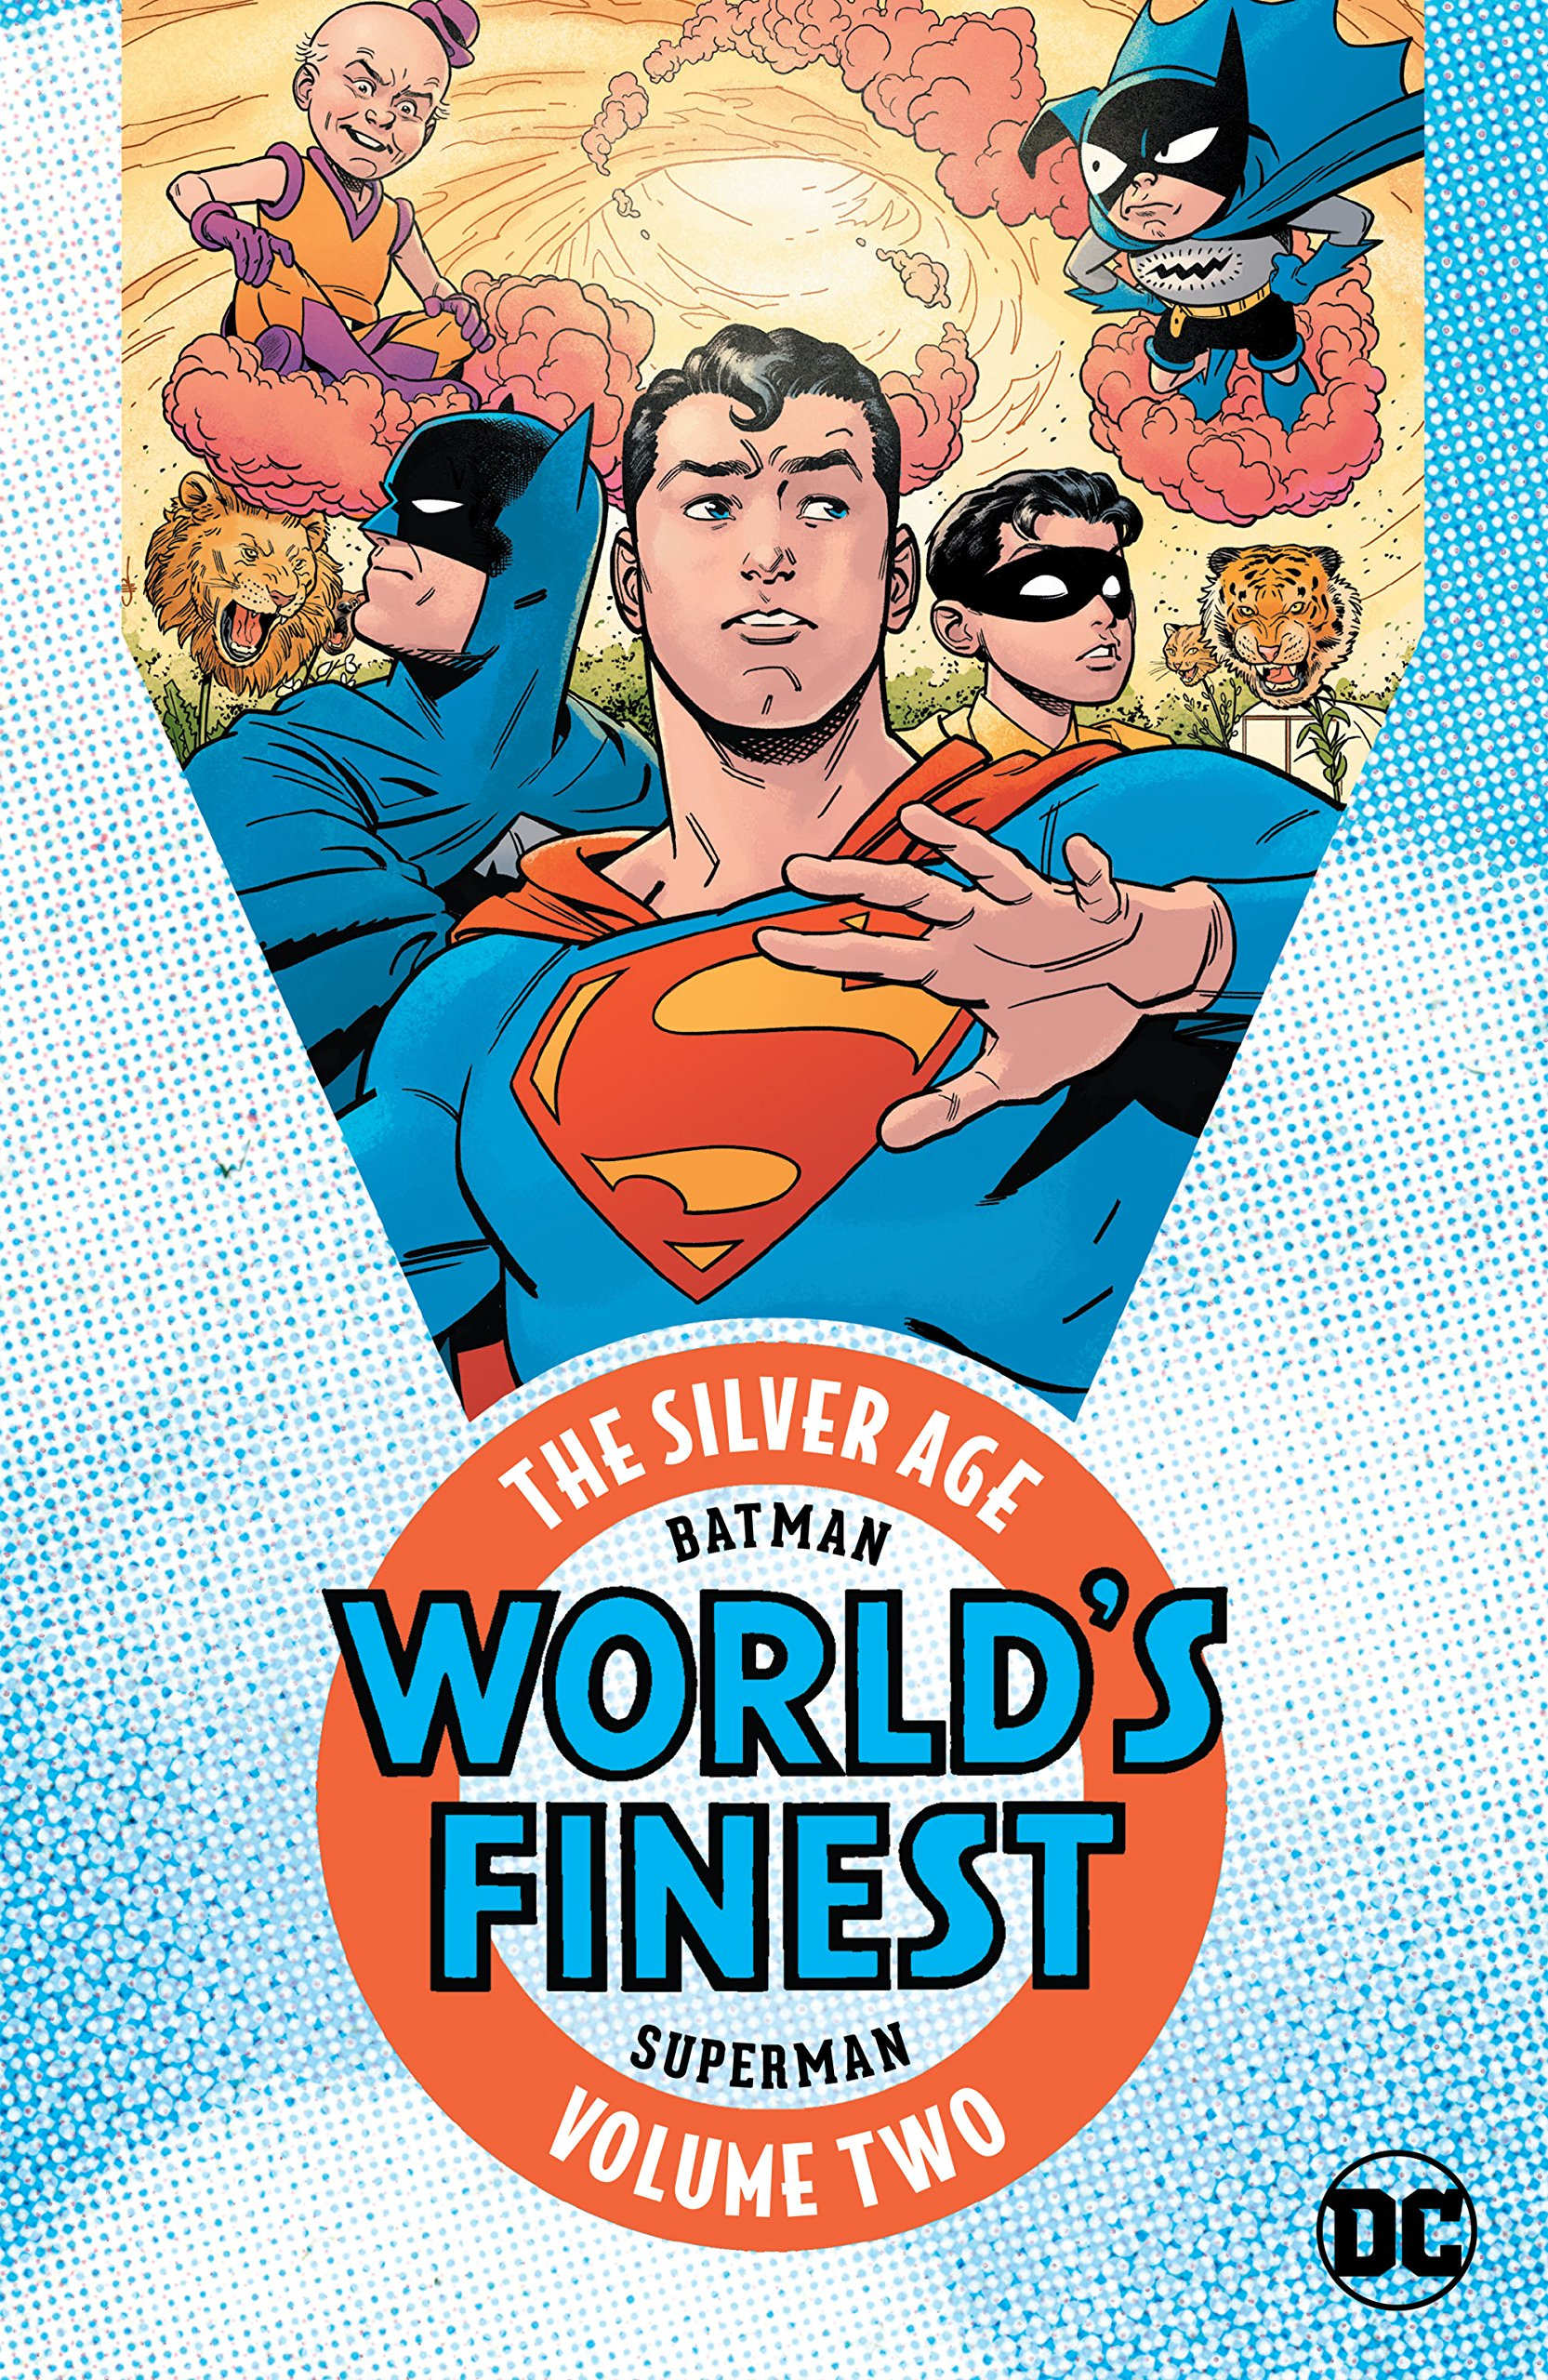 Batman And Superman In World's Finest  The Silver Age Vol. 2  World's Finest  1941 1986    English Edition